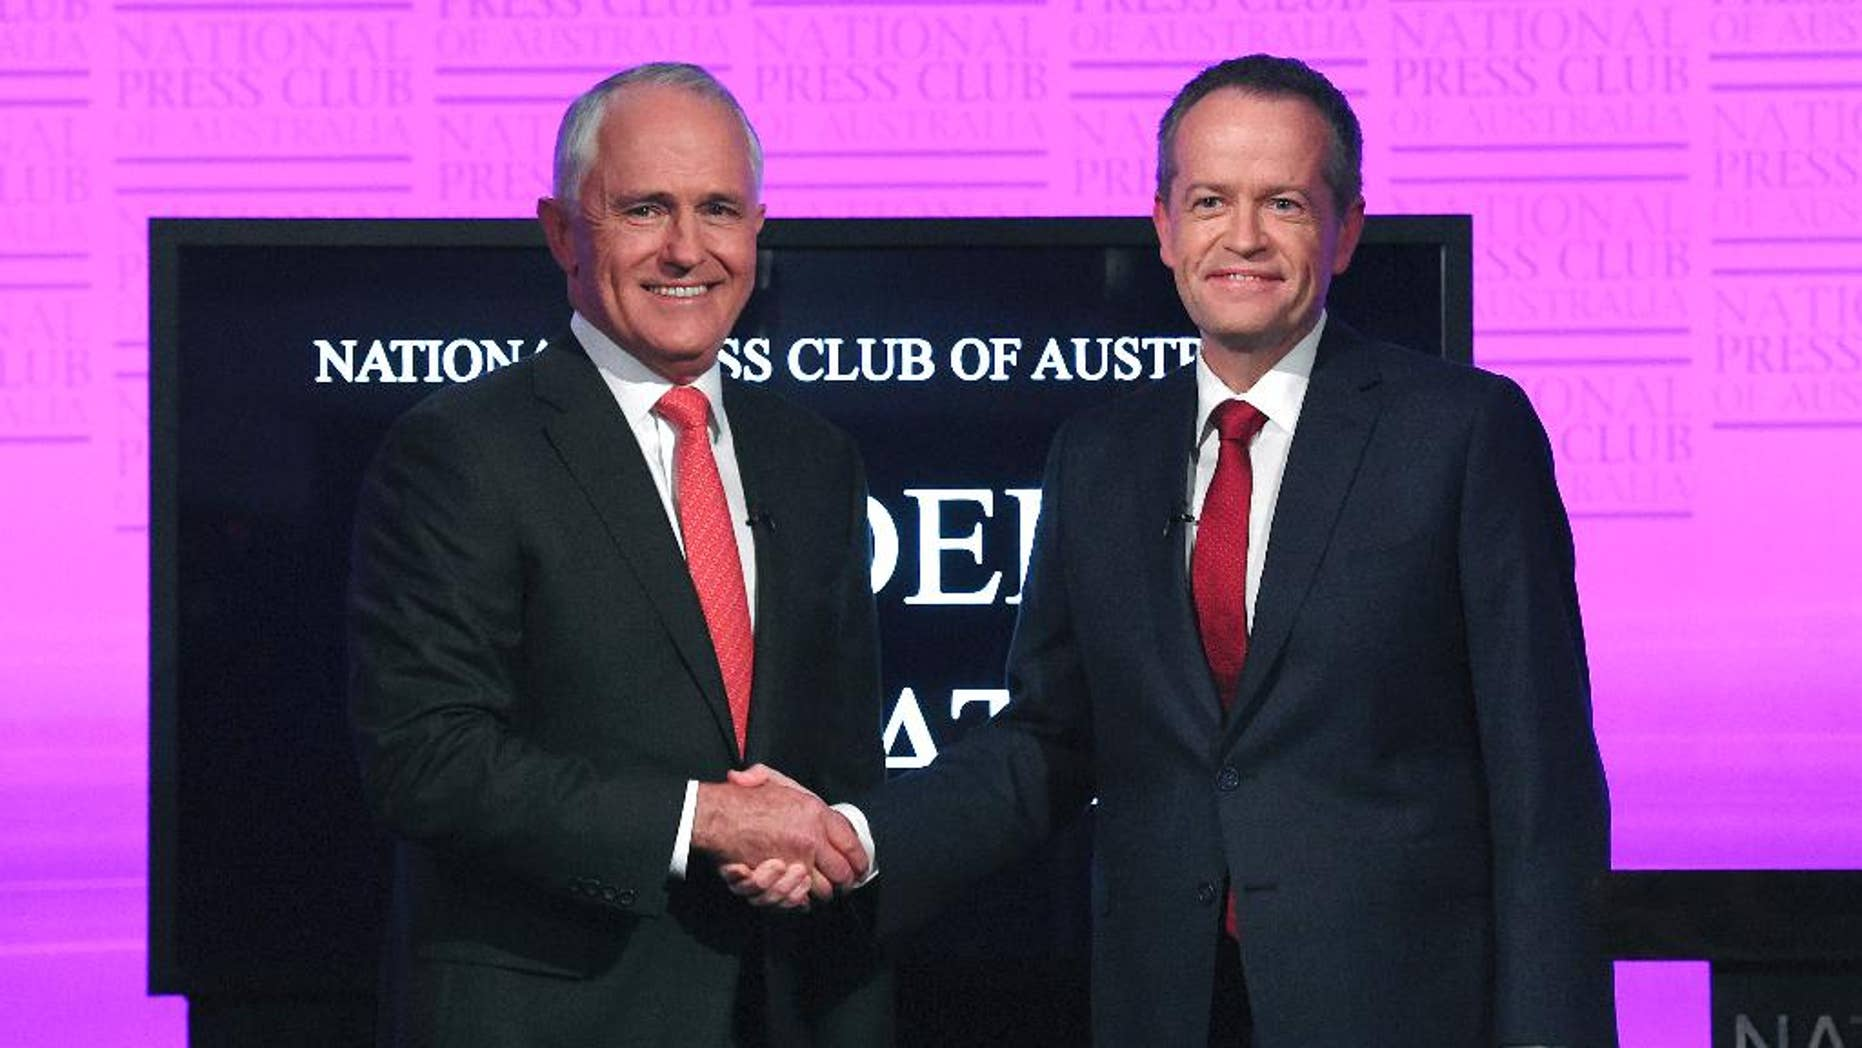 FILE - In this May, 29, 2016 file photo, Australian Prime Minister Malcolm Turnbull, left, and opposition leader Bill Shorten shake hands as they arrive for the leaders' debate at the National Press Club in Canberra. Turnbull said Tuesday, June 7 that he had reached an agreement with Facebook and News Corp. Australia to stream the debate early next week in a bid to reach more voters. Shorten later agreed to participate. (Tracey Nearmy/Pool Photo via AP, File)